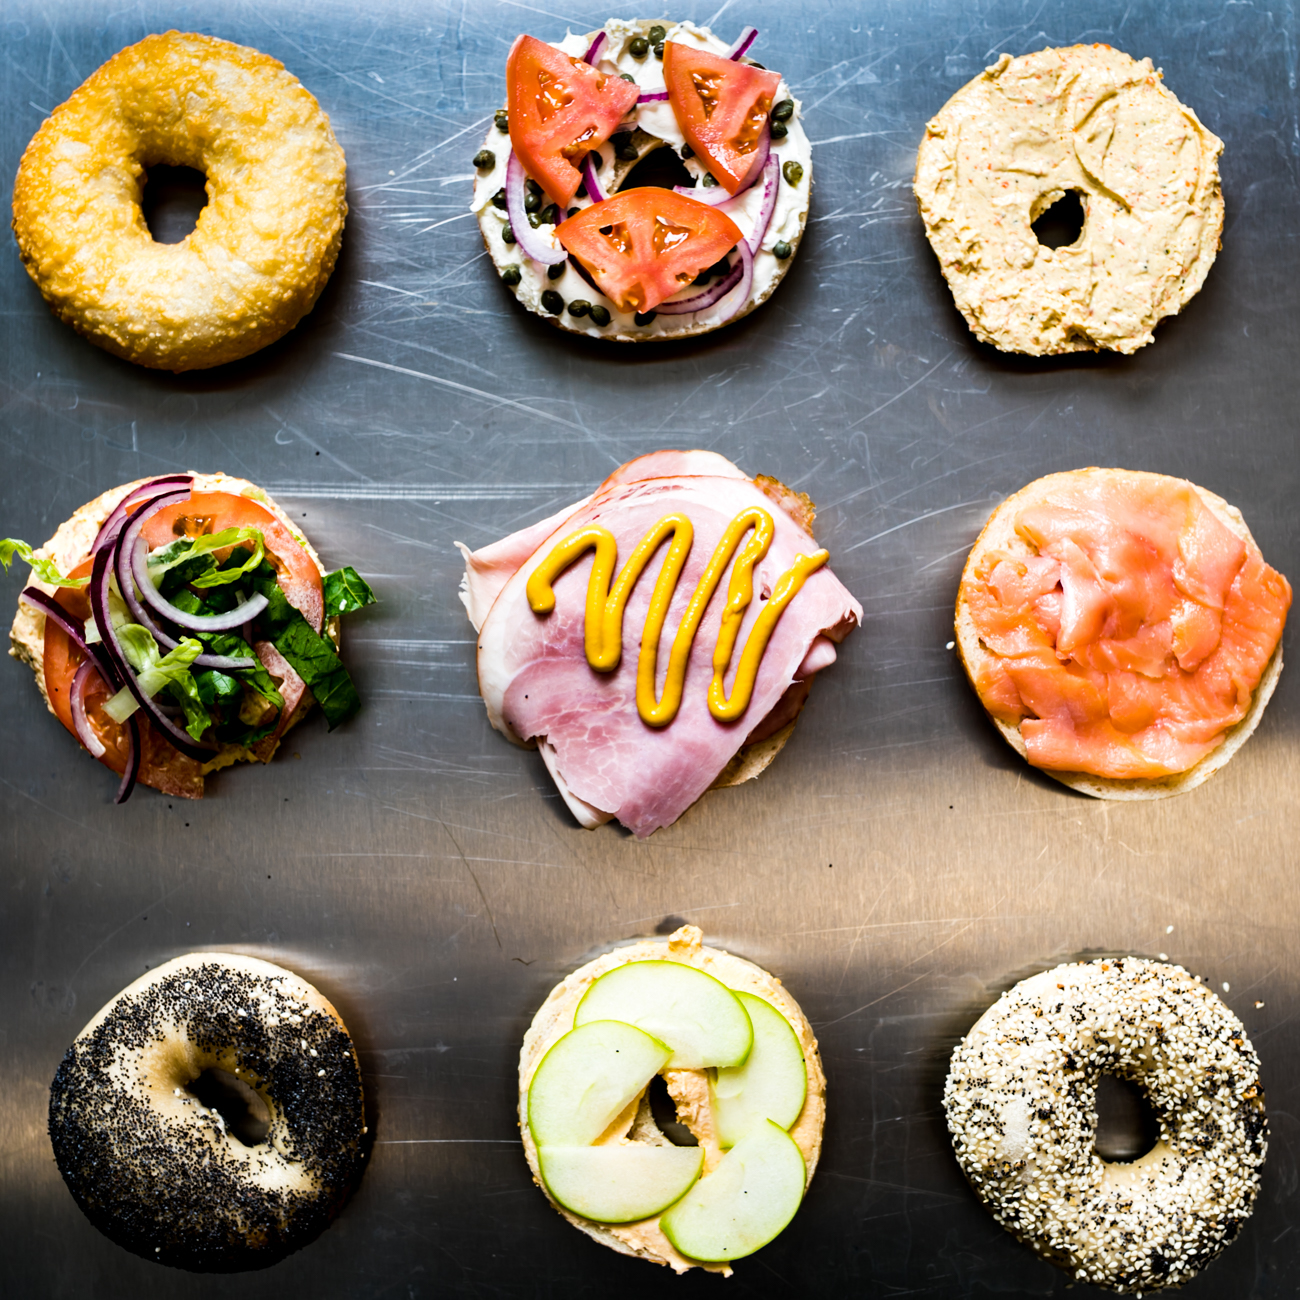 Previously, bagels from The Bagelry could only be found at the Rooted Juicery, Urbana Café, Wyoming Community Coffee, and at events around town. However, as of October 2018, The Bagelry has its own brick and mortar shop on Walnut Street in Over-the-Rhine. The shop may be new, but the age-old baking process of kettle boiling the bagels and letting them rise overnight is still in use. Check out any of the Bagelry's unique flavors for breakfast or lunch. ADDRESS: 1401 Walnut Street (45202) / Image: Amy Elisabeth Spasoff // Published: 10.5.18